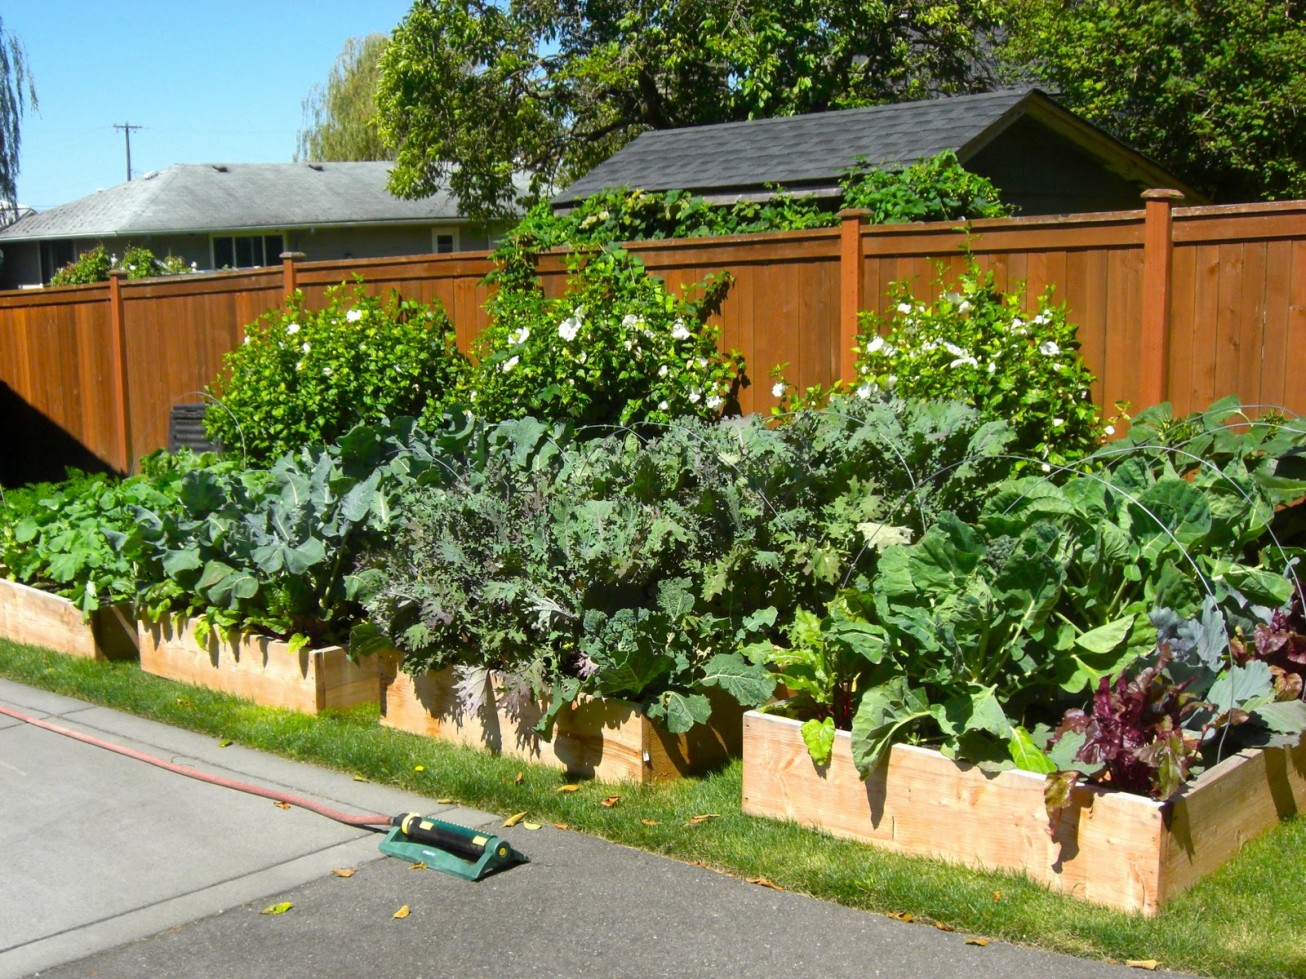 Fertilizing Vegetable Gardening In A Raised Bed